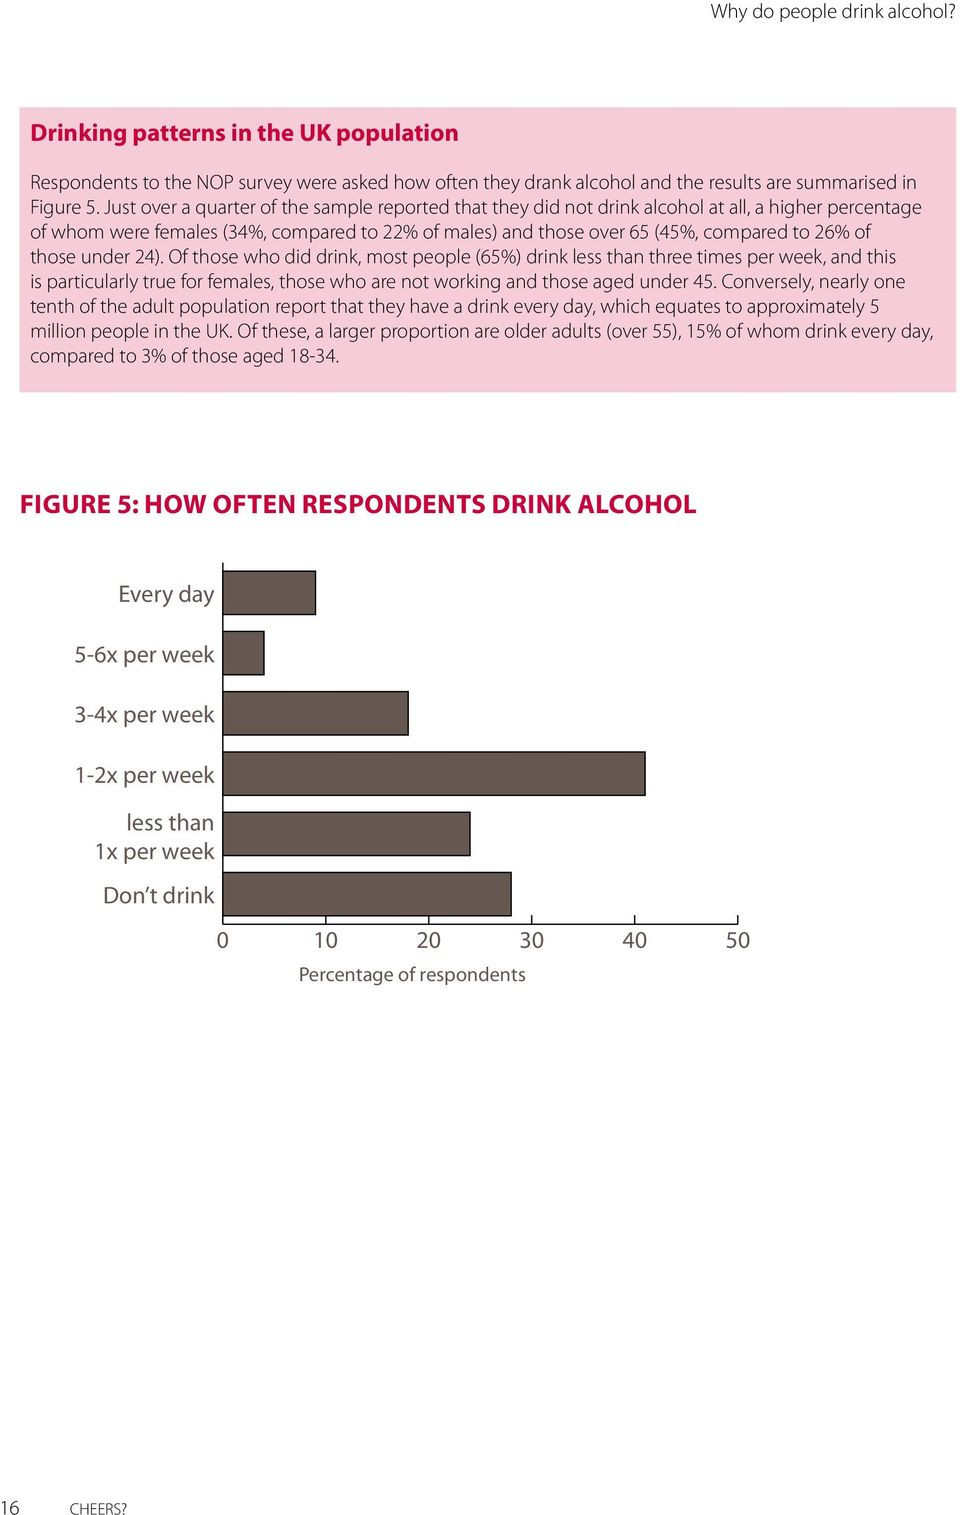 those under 24). Of those who did drink, most people (65%) drink less than three times per week, and this is particularly true for females, those who are not working and those aged under 45.